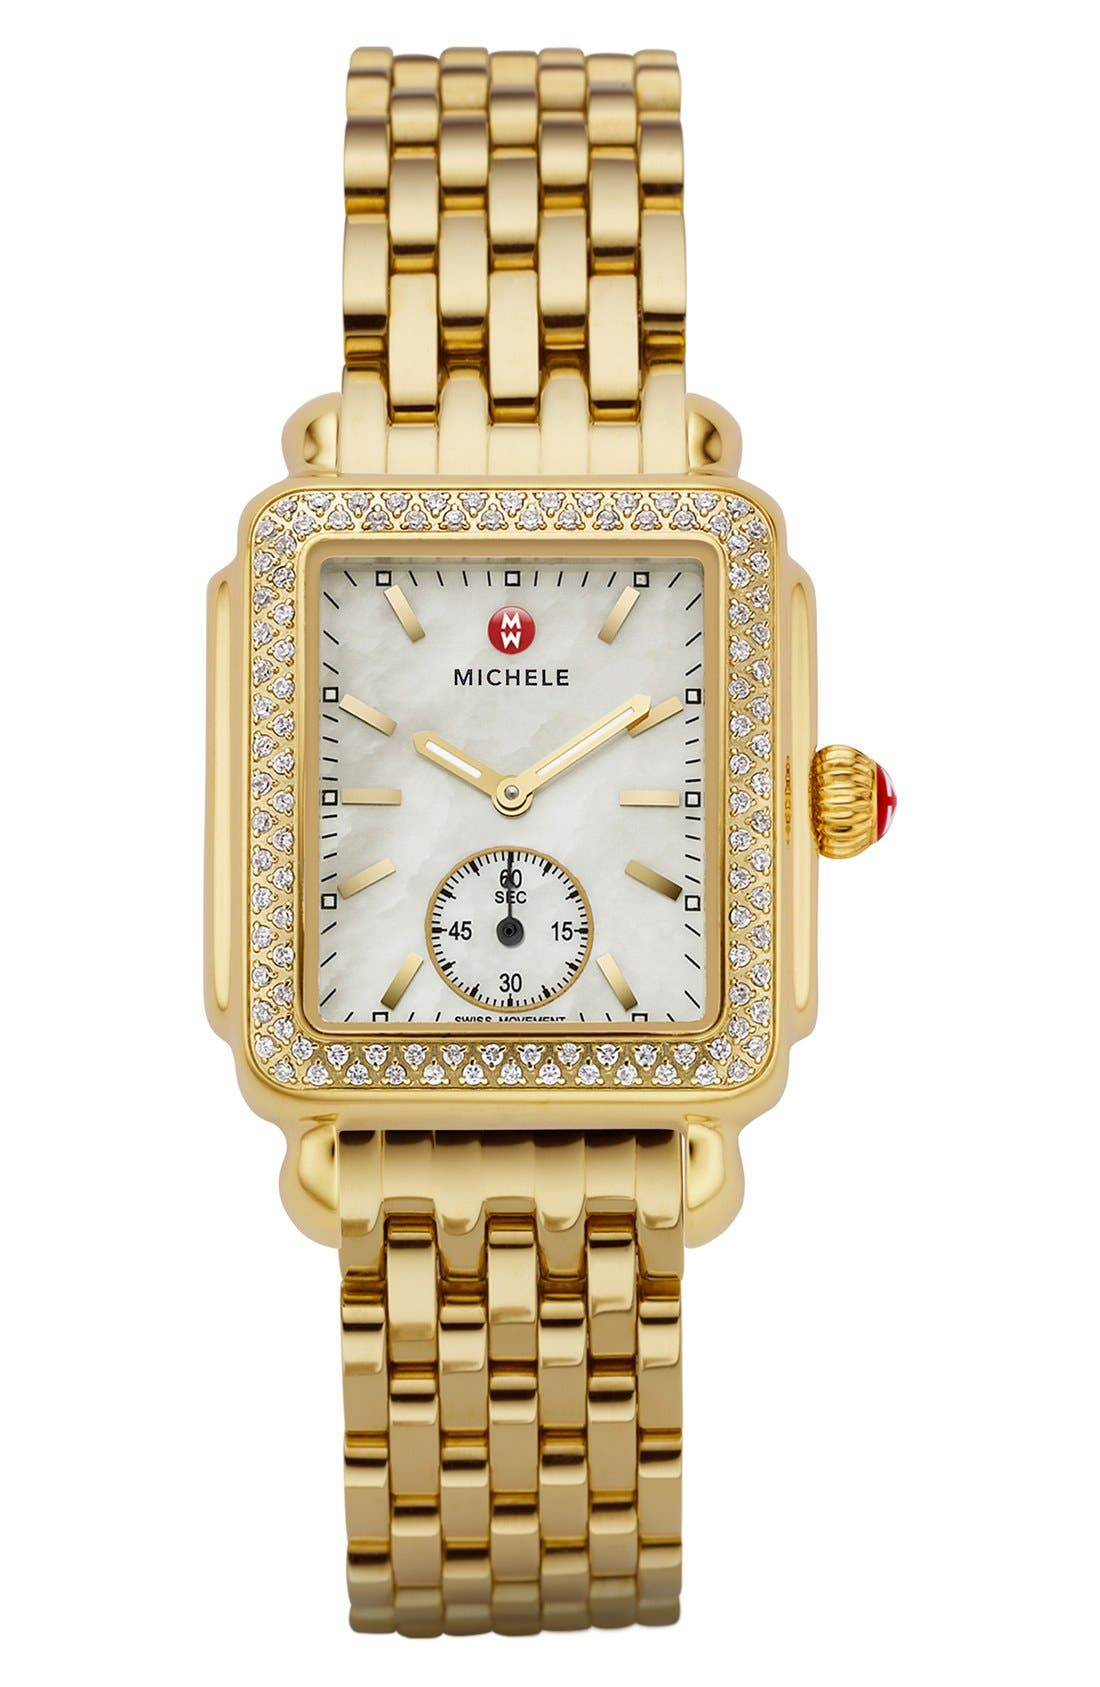 Deco 16 Diamond Gold Plated Watch Head, 29mm x 31mm,                             Alternate thumbnail 4, color,                             GOLD